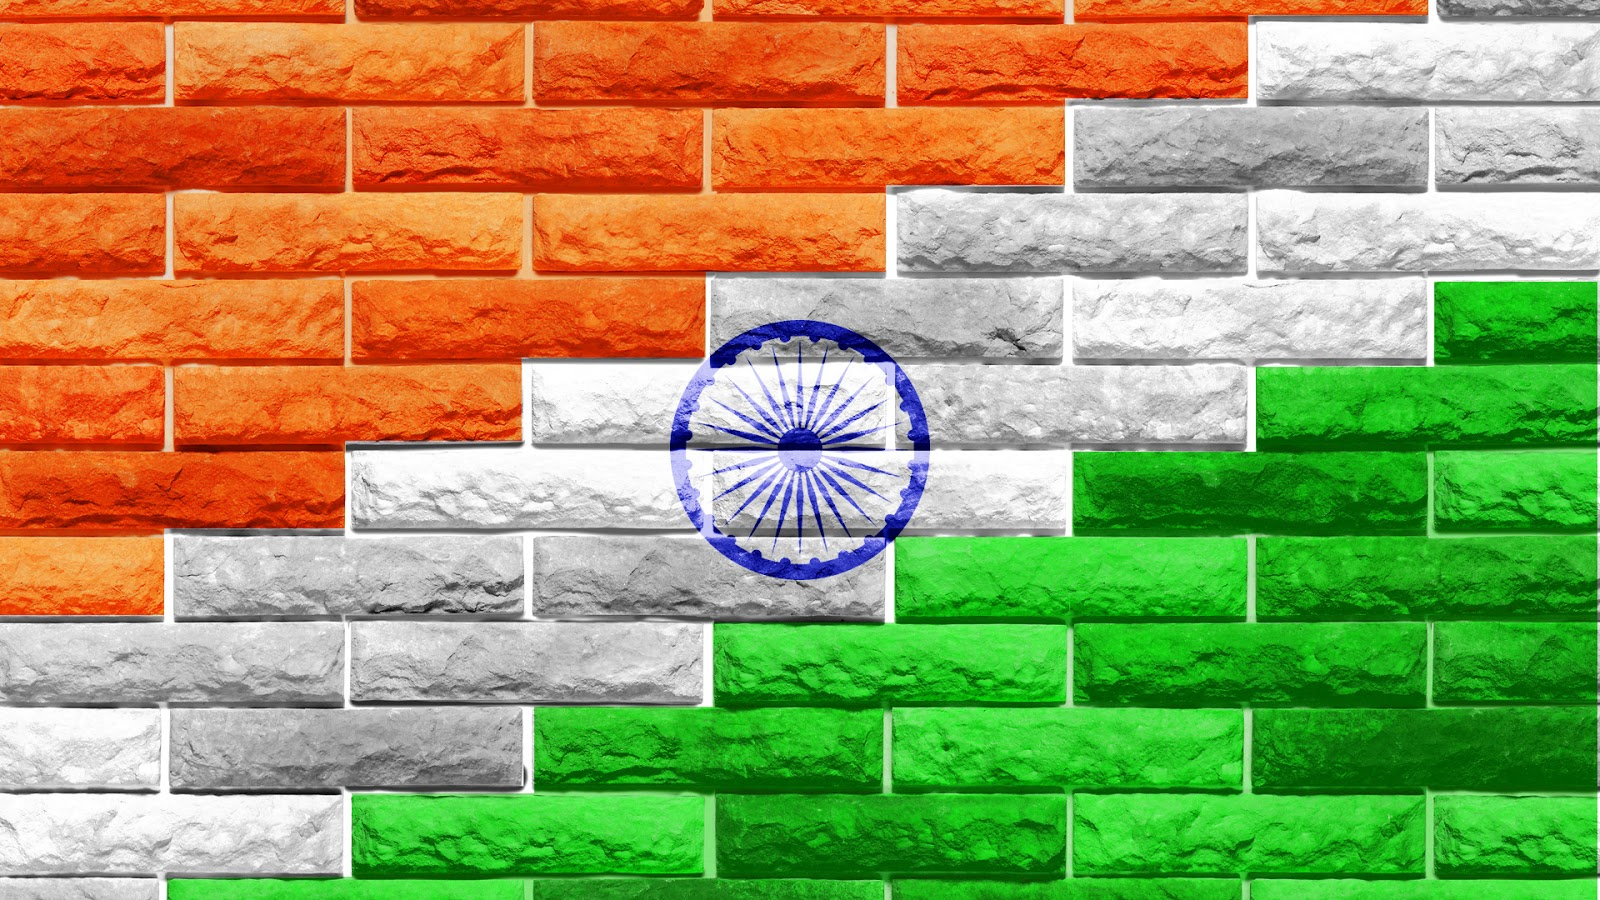 Indian Flag Background Hd: 15 August HD Flag Images 2018 And HD Flag Images Of 15